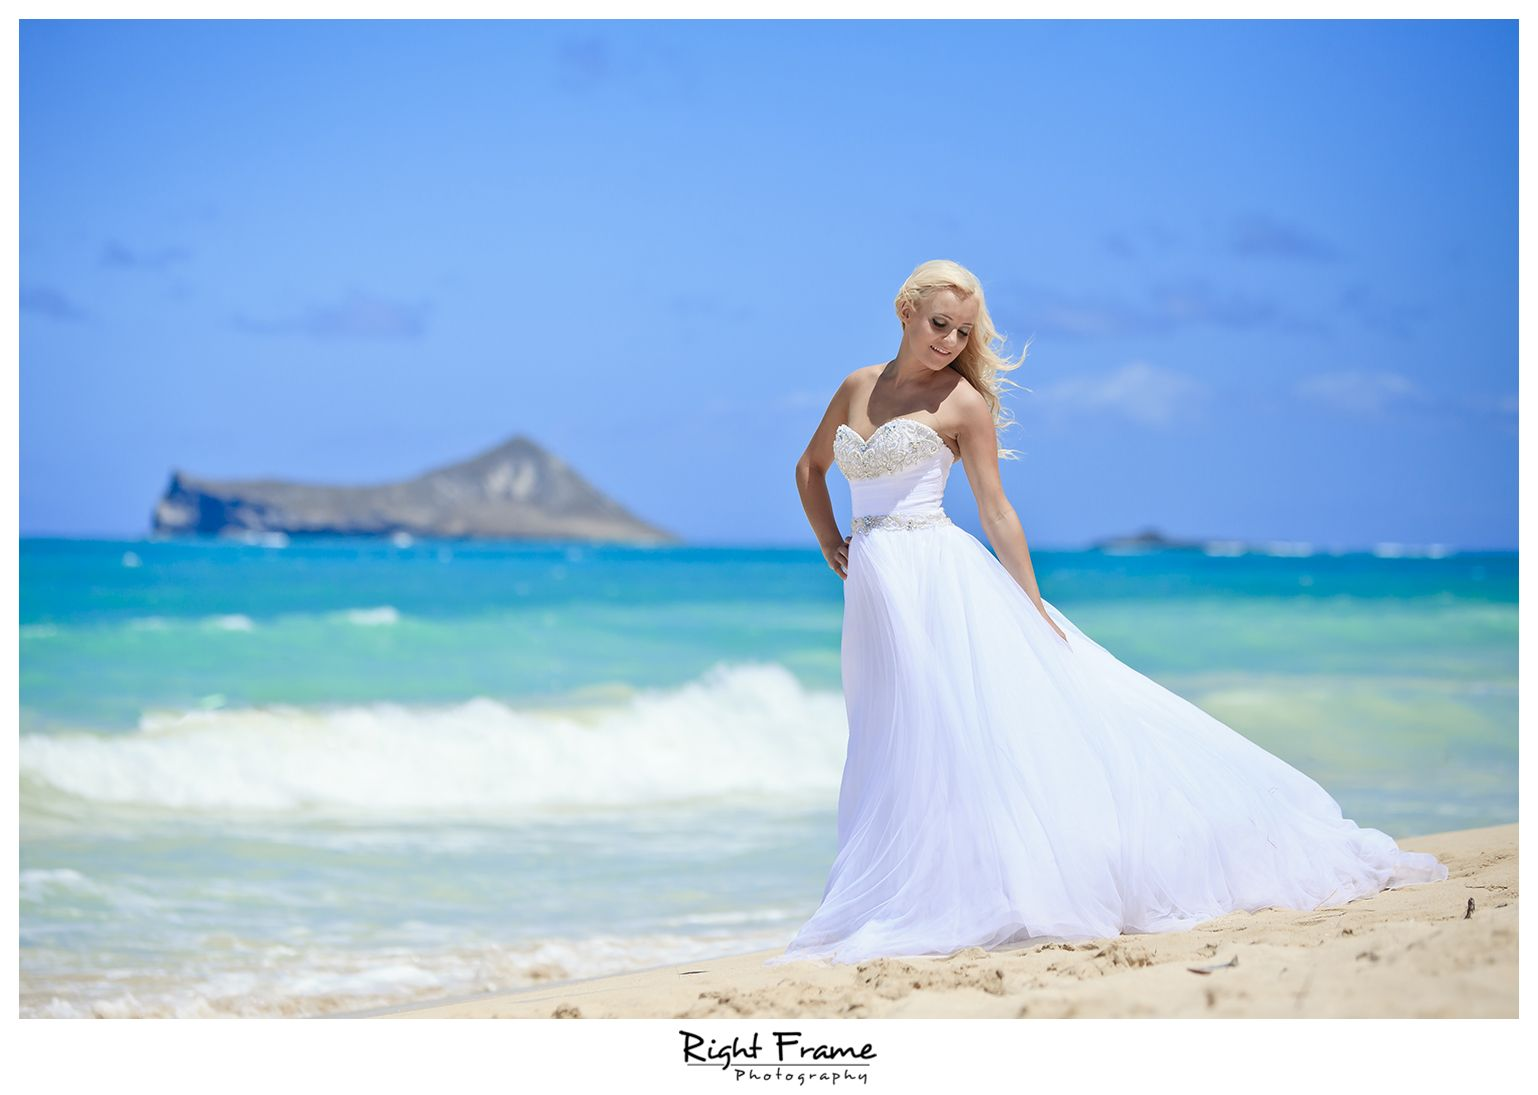 www.rightframe.net - oahu trash the dress, Destination, Beach ...